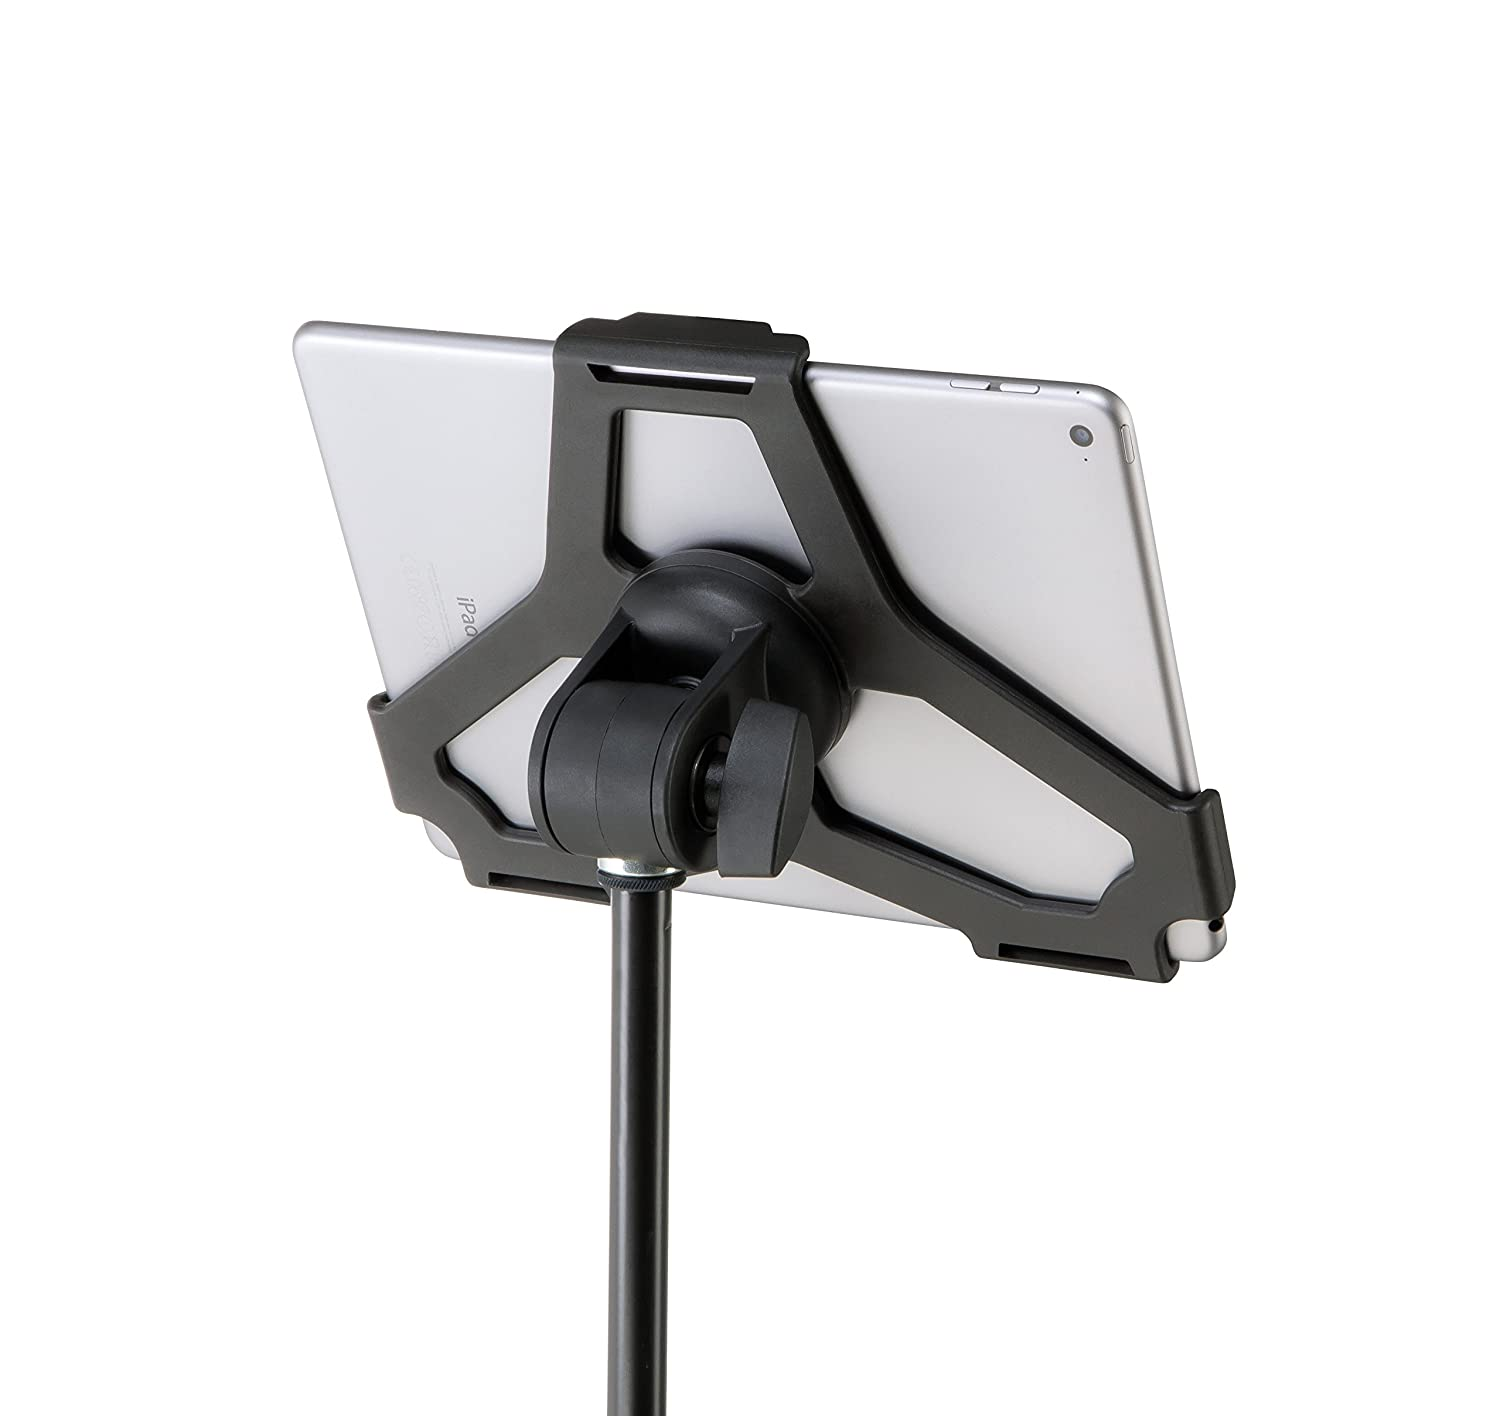 K/&M Stands 19717-500-55 iPad Air 2 Mic Stand Holder